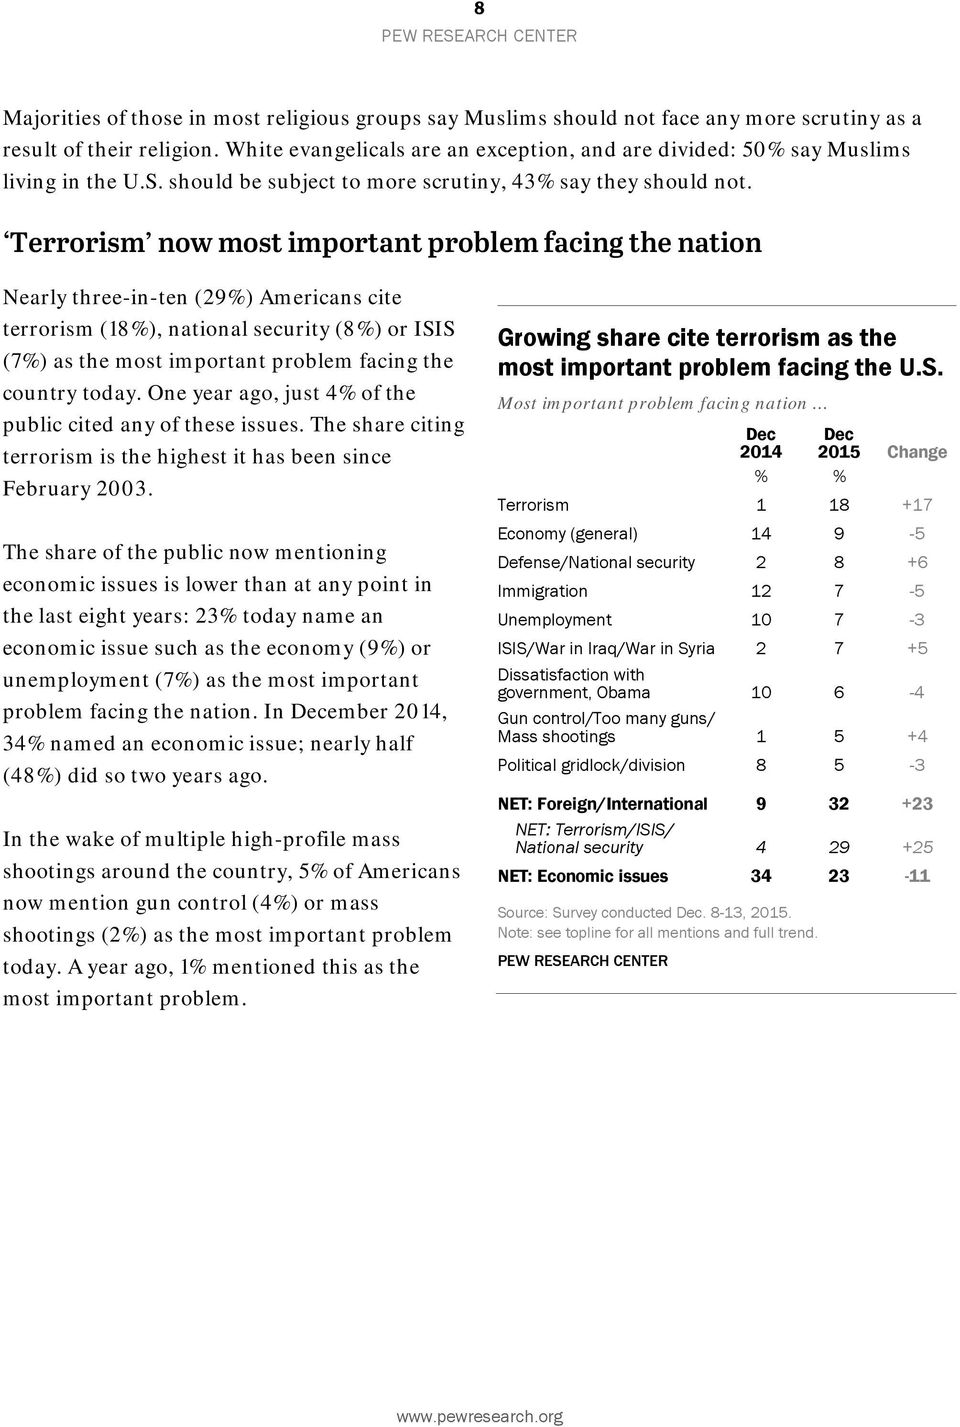 Terrorism now most important problem facing the nation Nearly three-in-ten (29%) Americans cite terrorism (18%), national security (8%) or ISIS (7%) as the most important problem facing the country